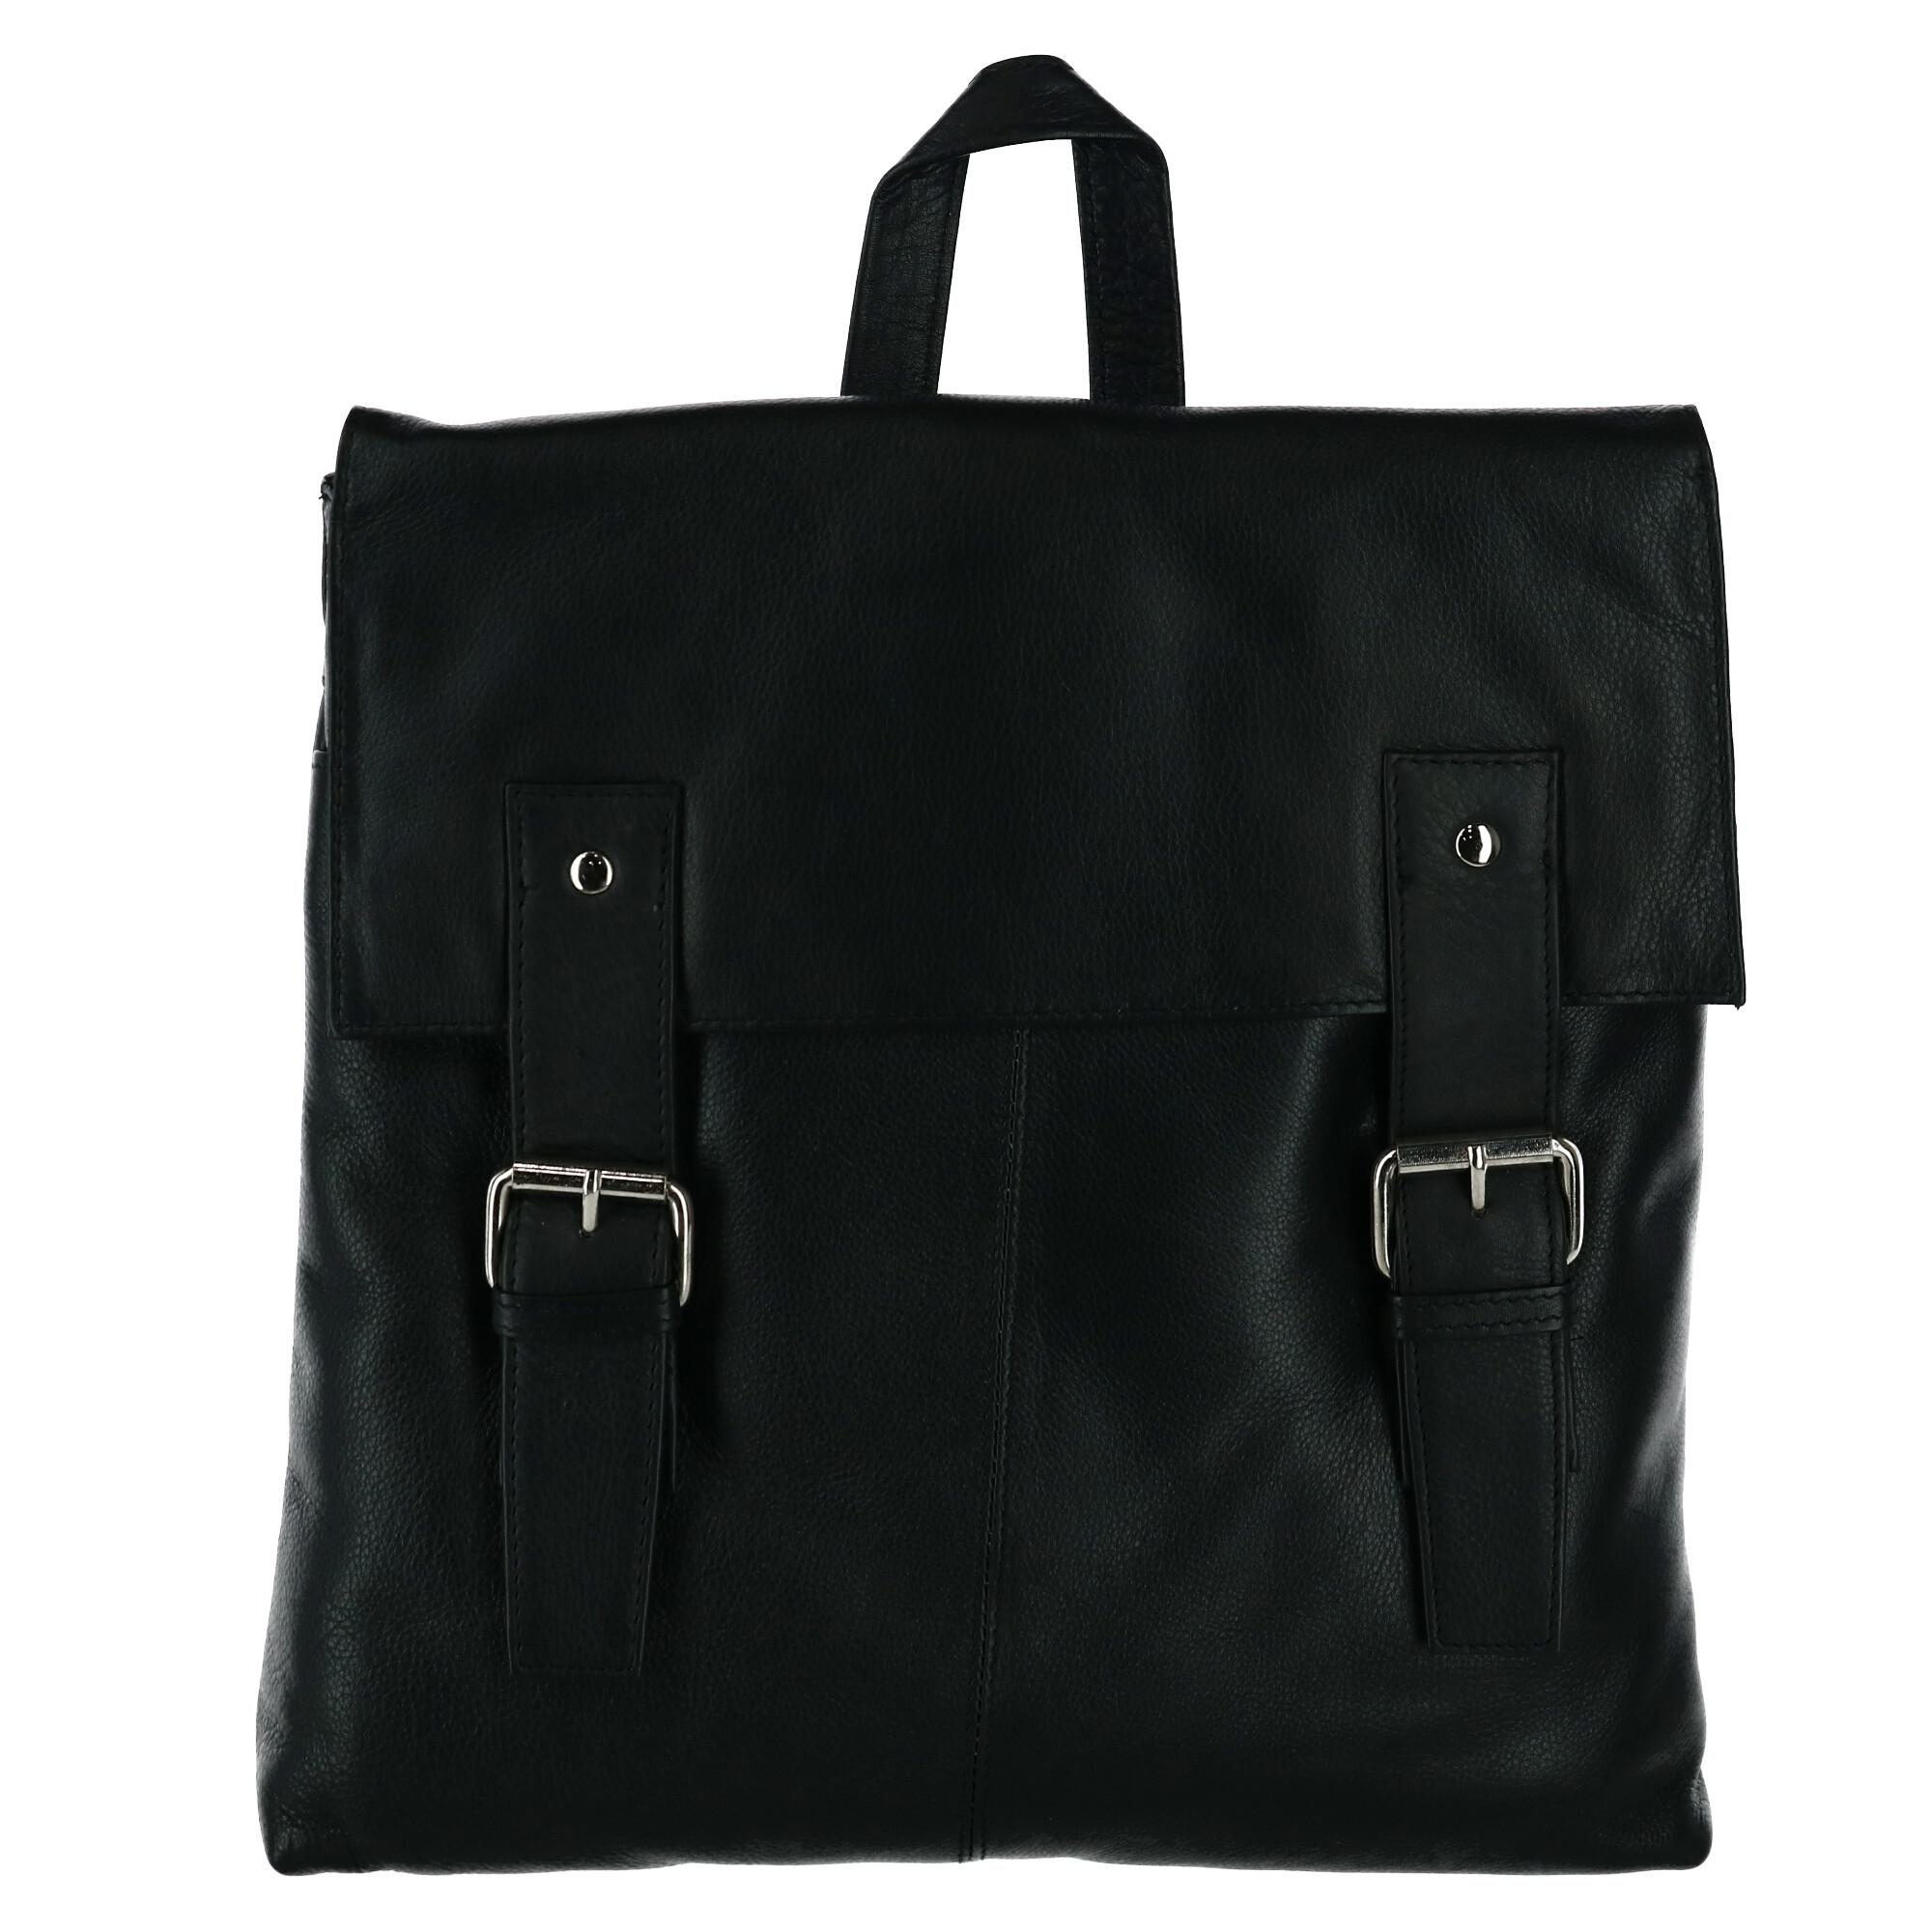 Leather Impressions Women's Magnetic Buckle Backpack Purse - Black one (LI-10204-BLK LI-10204) photo